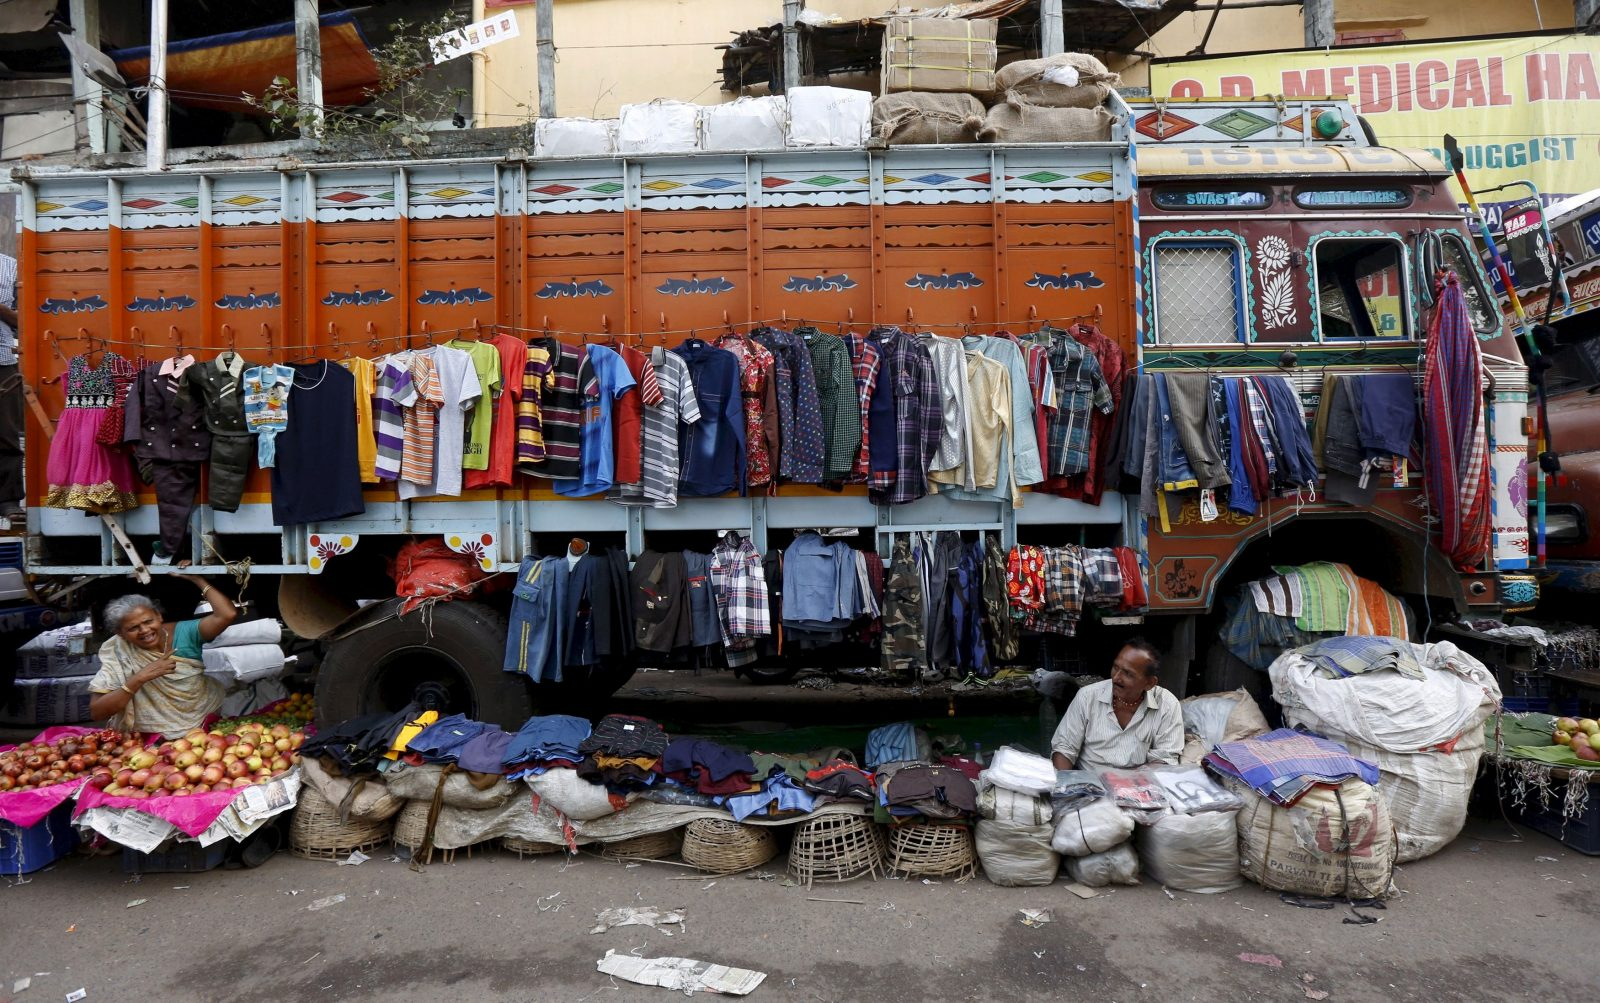 Roadside vendors Sabitri Das, 59, and Narayan Prasad, 69, chat as they wait for customers in front of a parked truck in Kolkata, India, in this March 11, 2016 file photo.   REUTERS/Rupak De Chowdhuri/Files         GLOBAL BUSINESS WEEK AHEAD PACKAGE- SEARCH 'BUSINESS WEEK AHEAD APRIL 11' FOR ALL IMAGES - GF10000375550